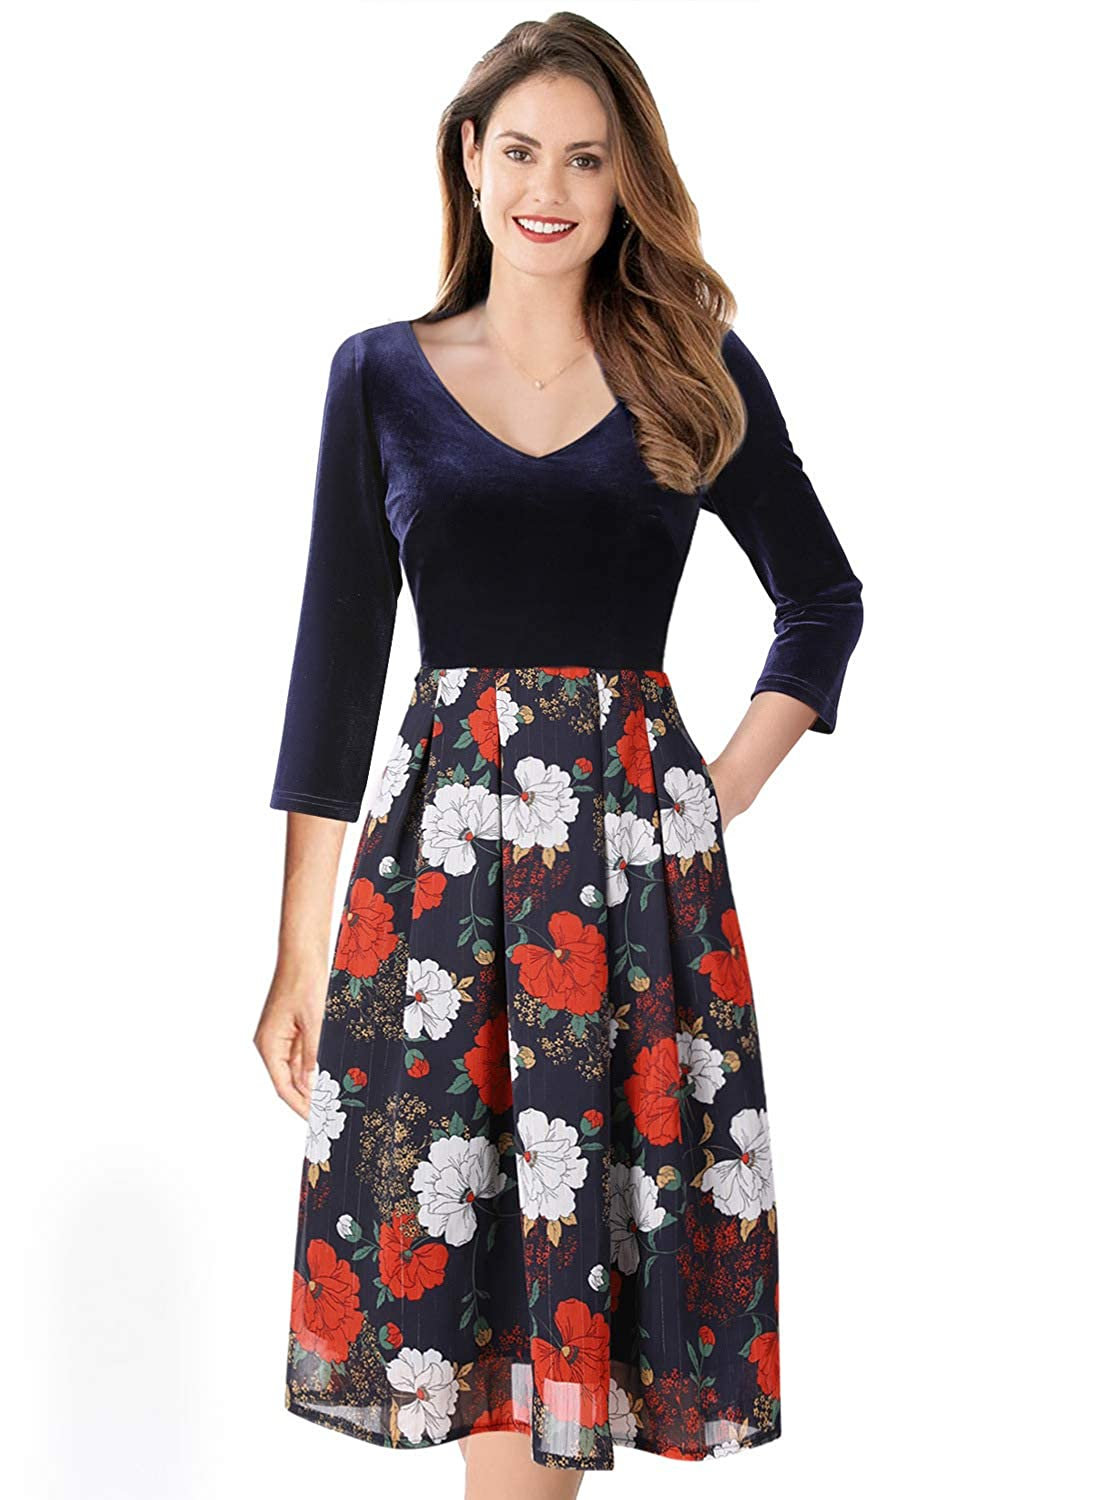 bluee and Multi Floral Print VfEmage Womens Vintage Summer Polka Dot Wear To Work Casual Aline Dress